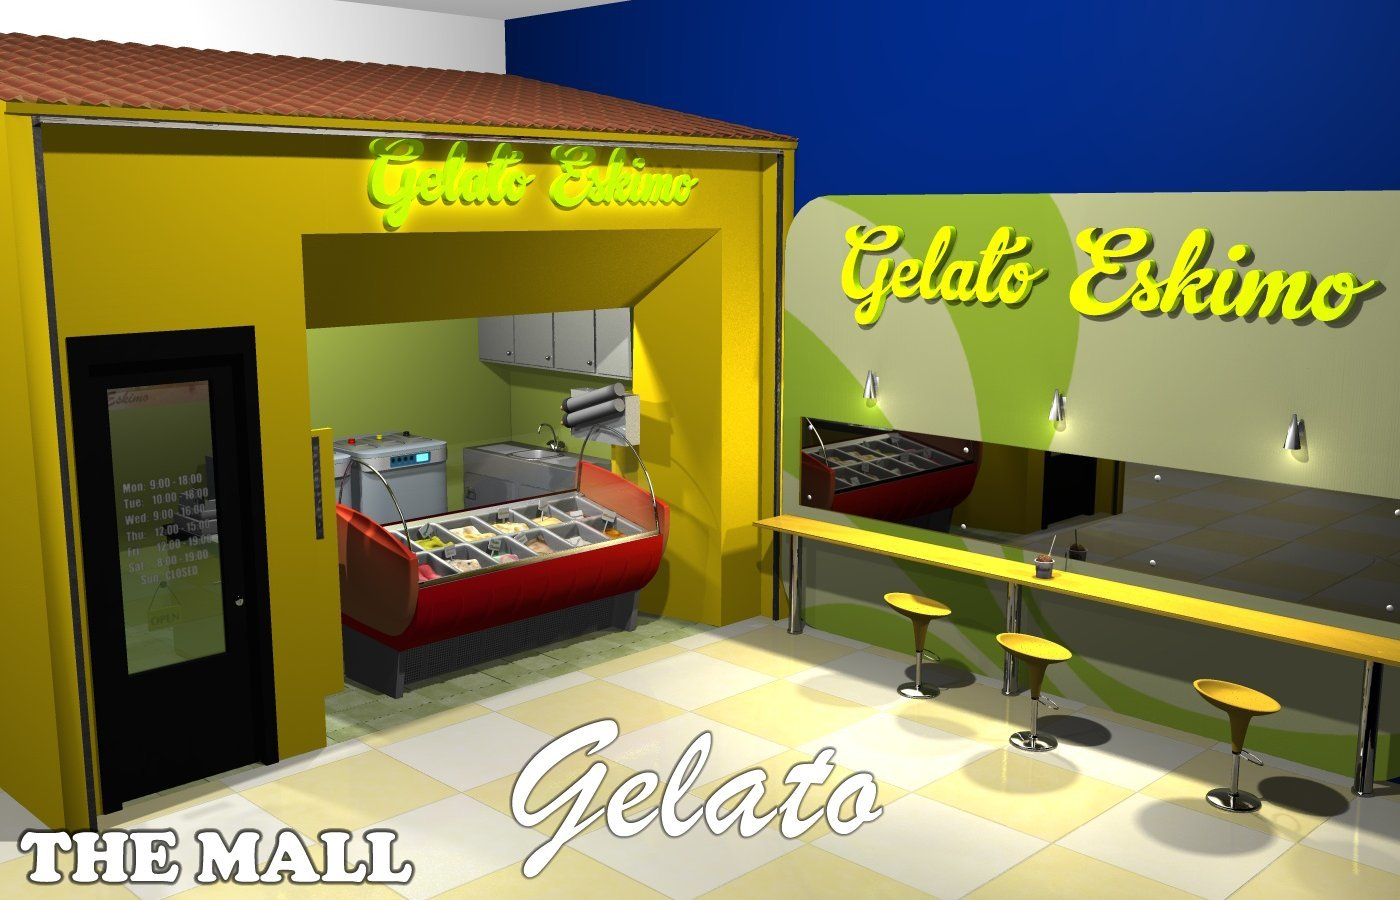 The Mall - Gelato - Extended License